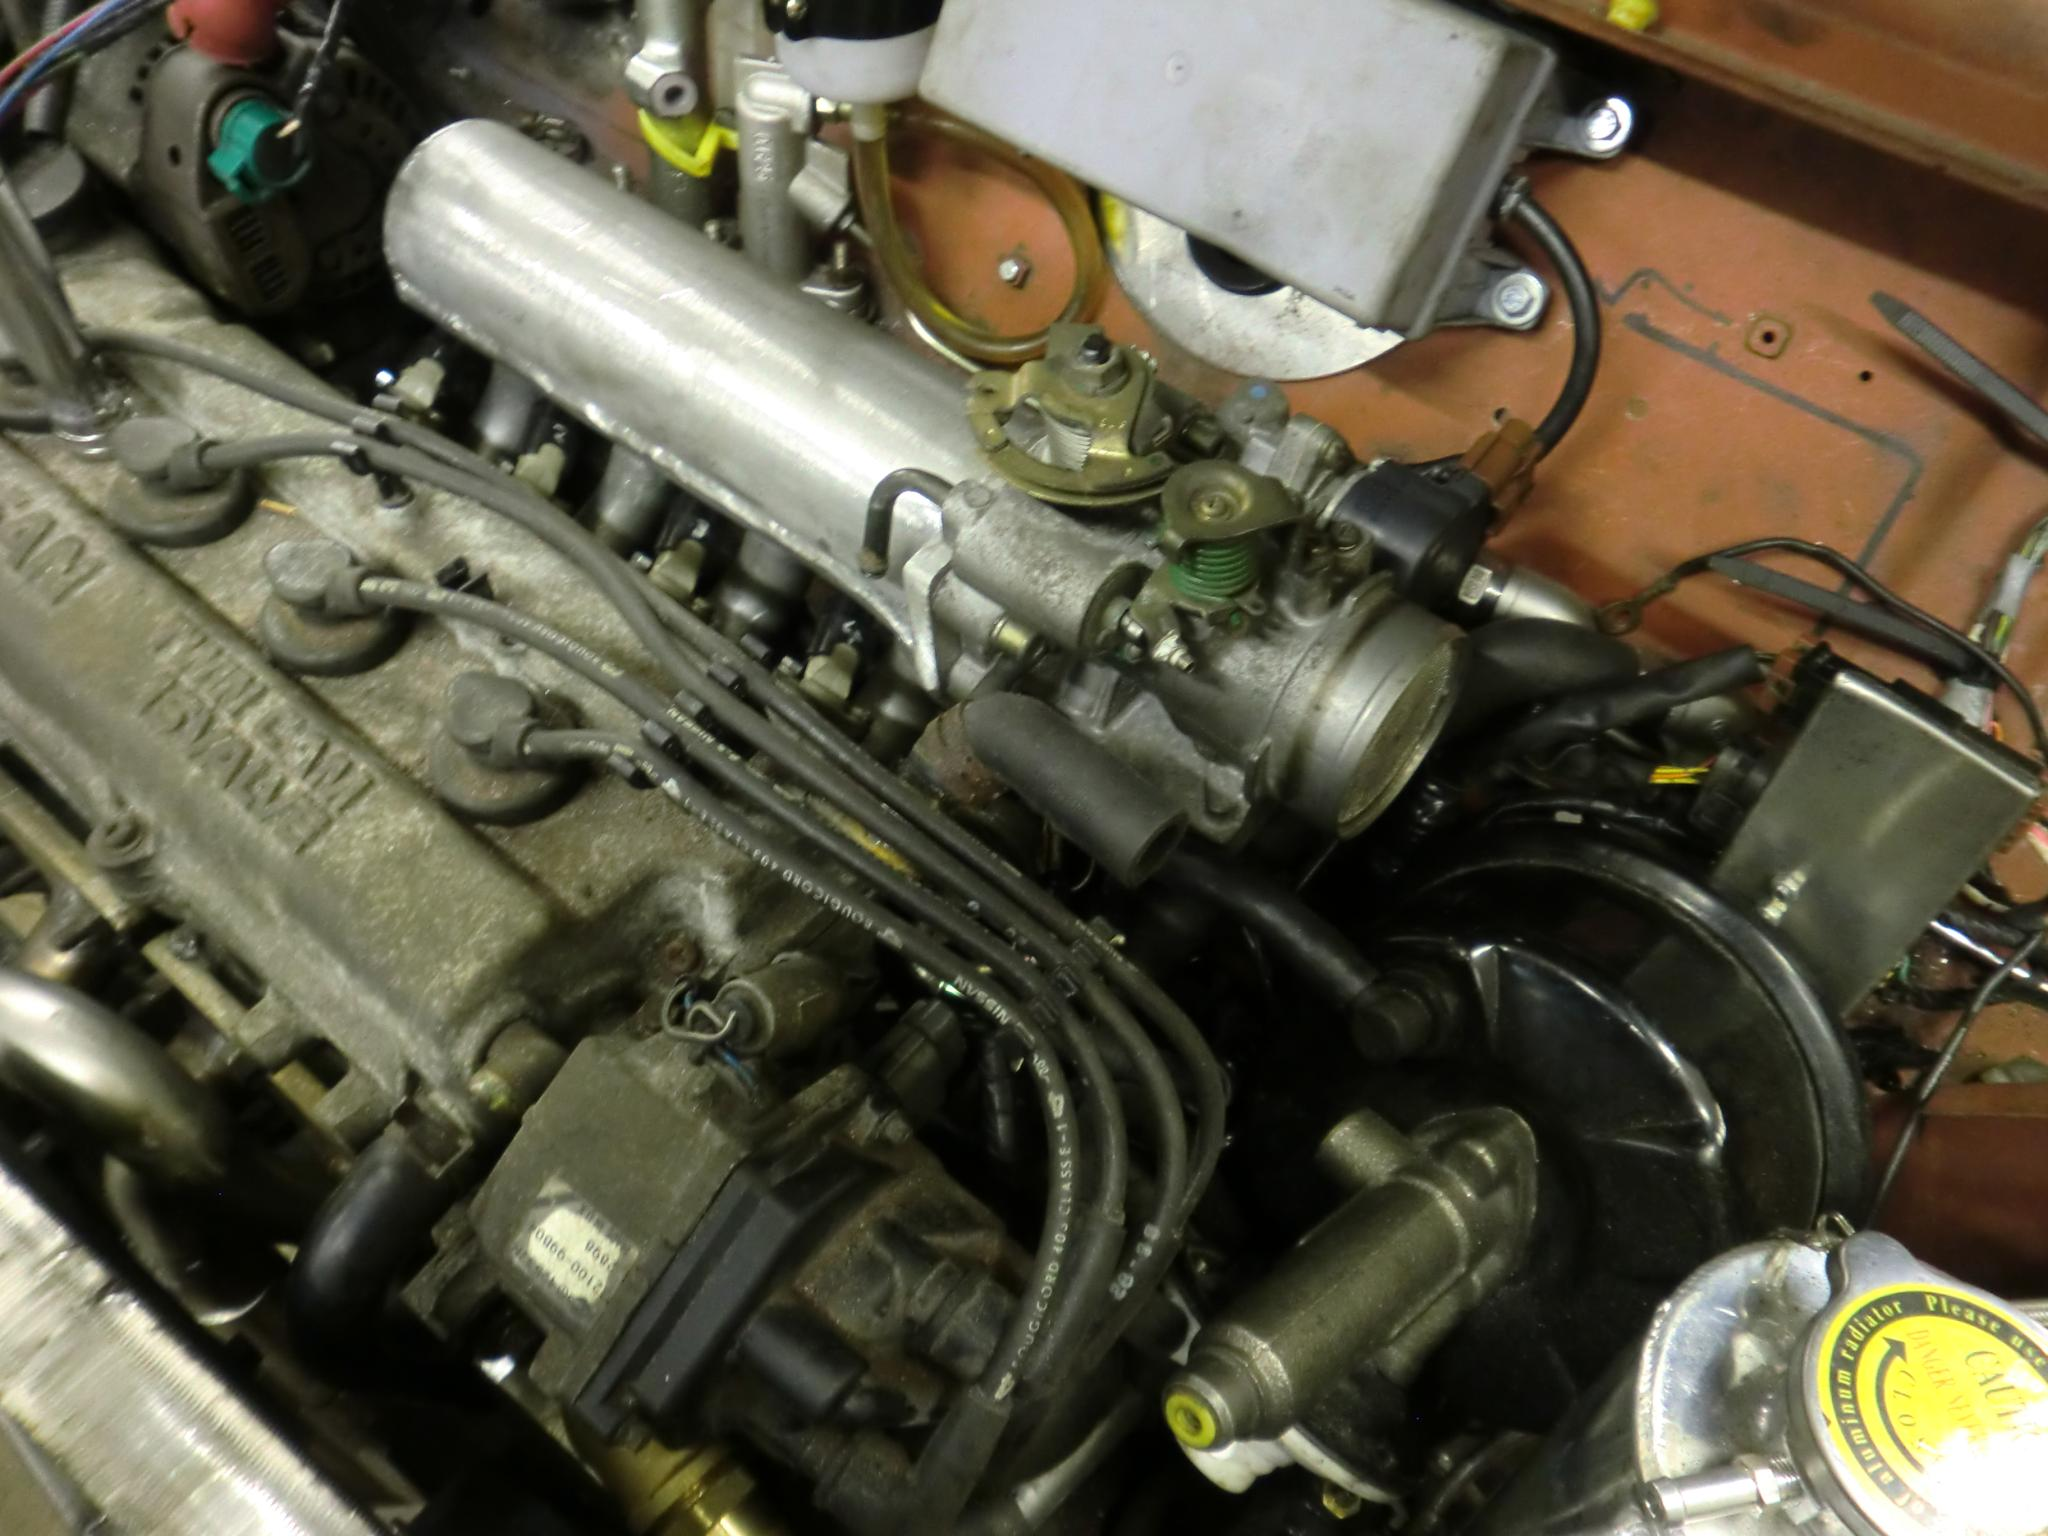 Random Stuff Micra Mini Project Wiring Loom I Have Re Jigged The To Cope With Fact That Throttle Body And Its Sensors Are In A Completely Different Place Compared Original